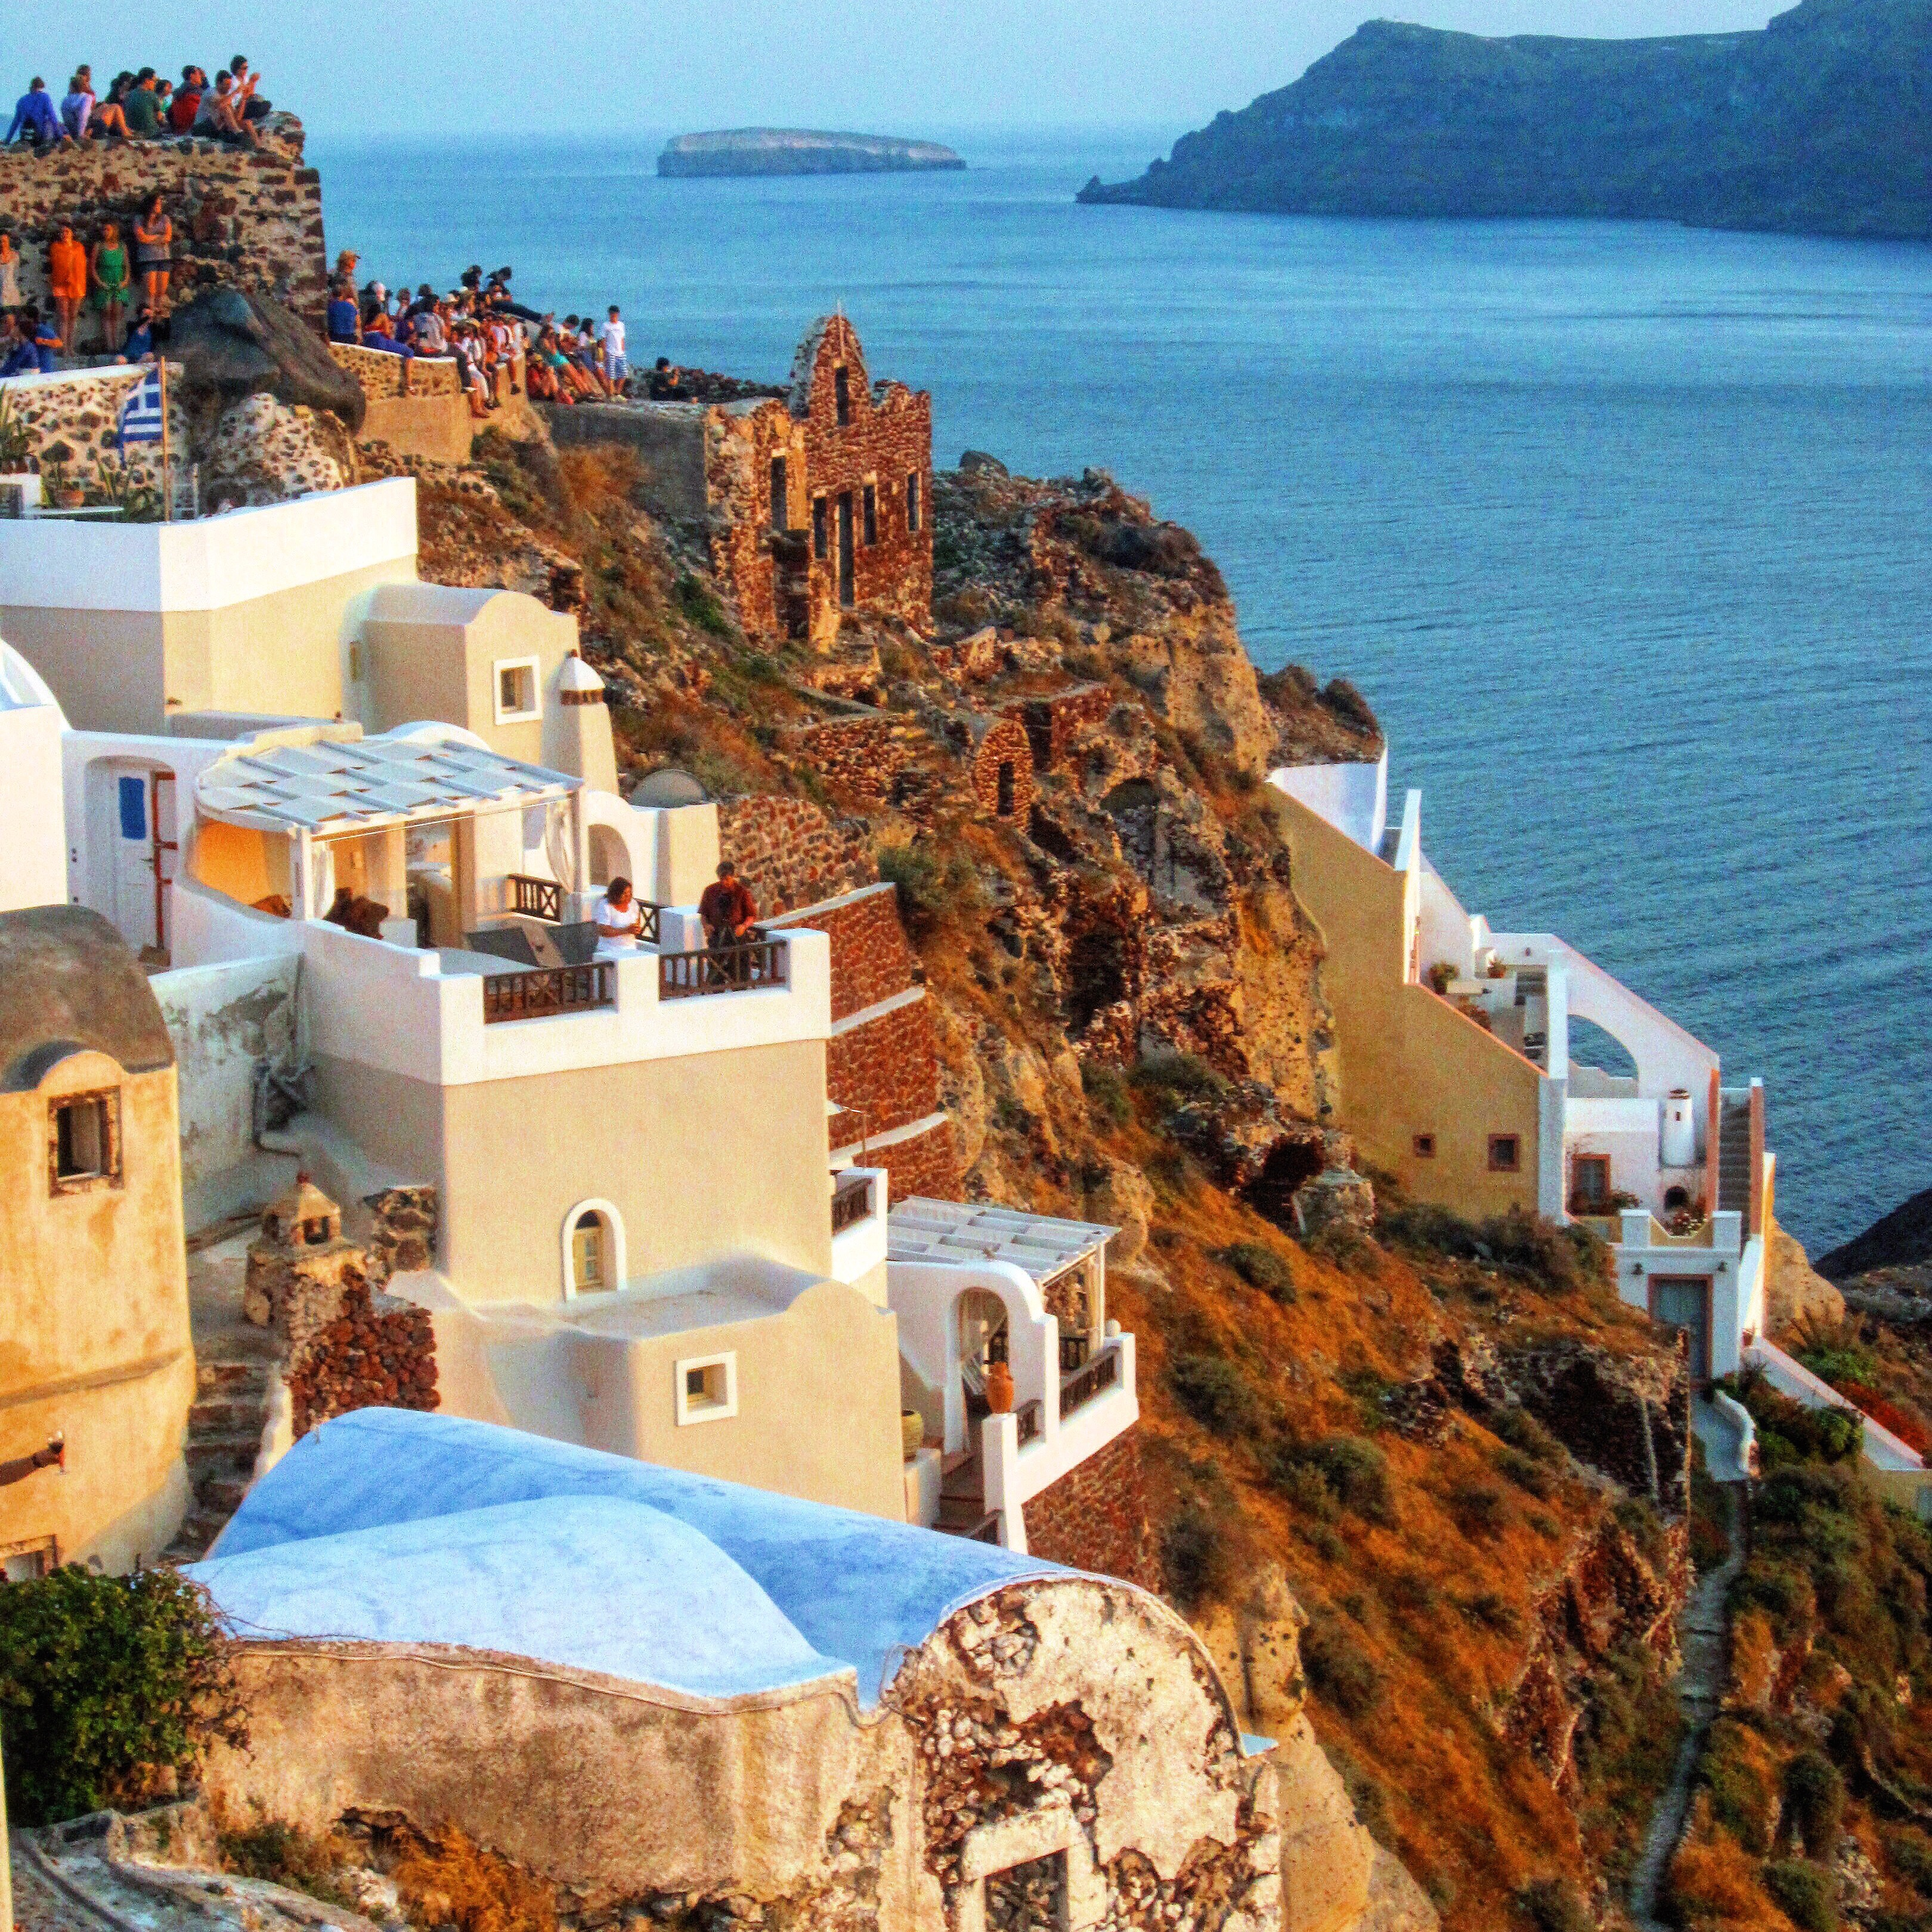 flights on Aegean Airlines to Greece to watch sunset in oia santorini